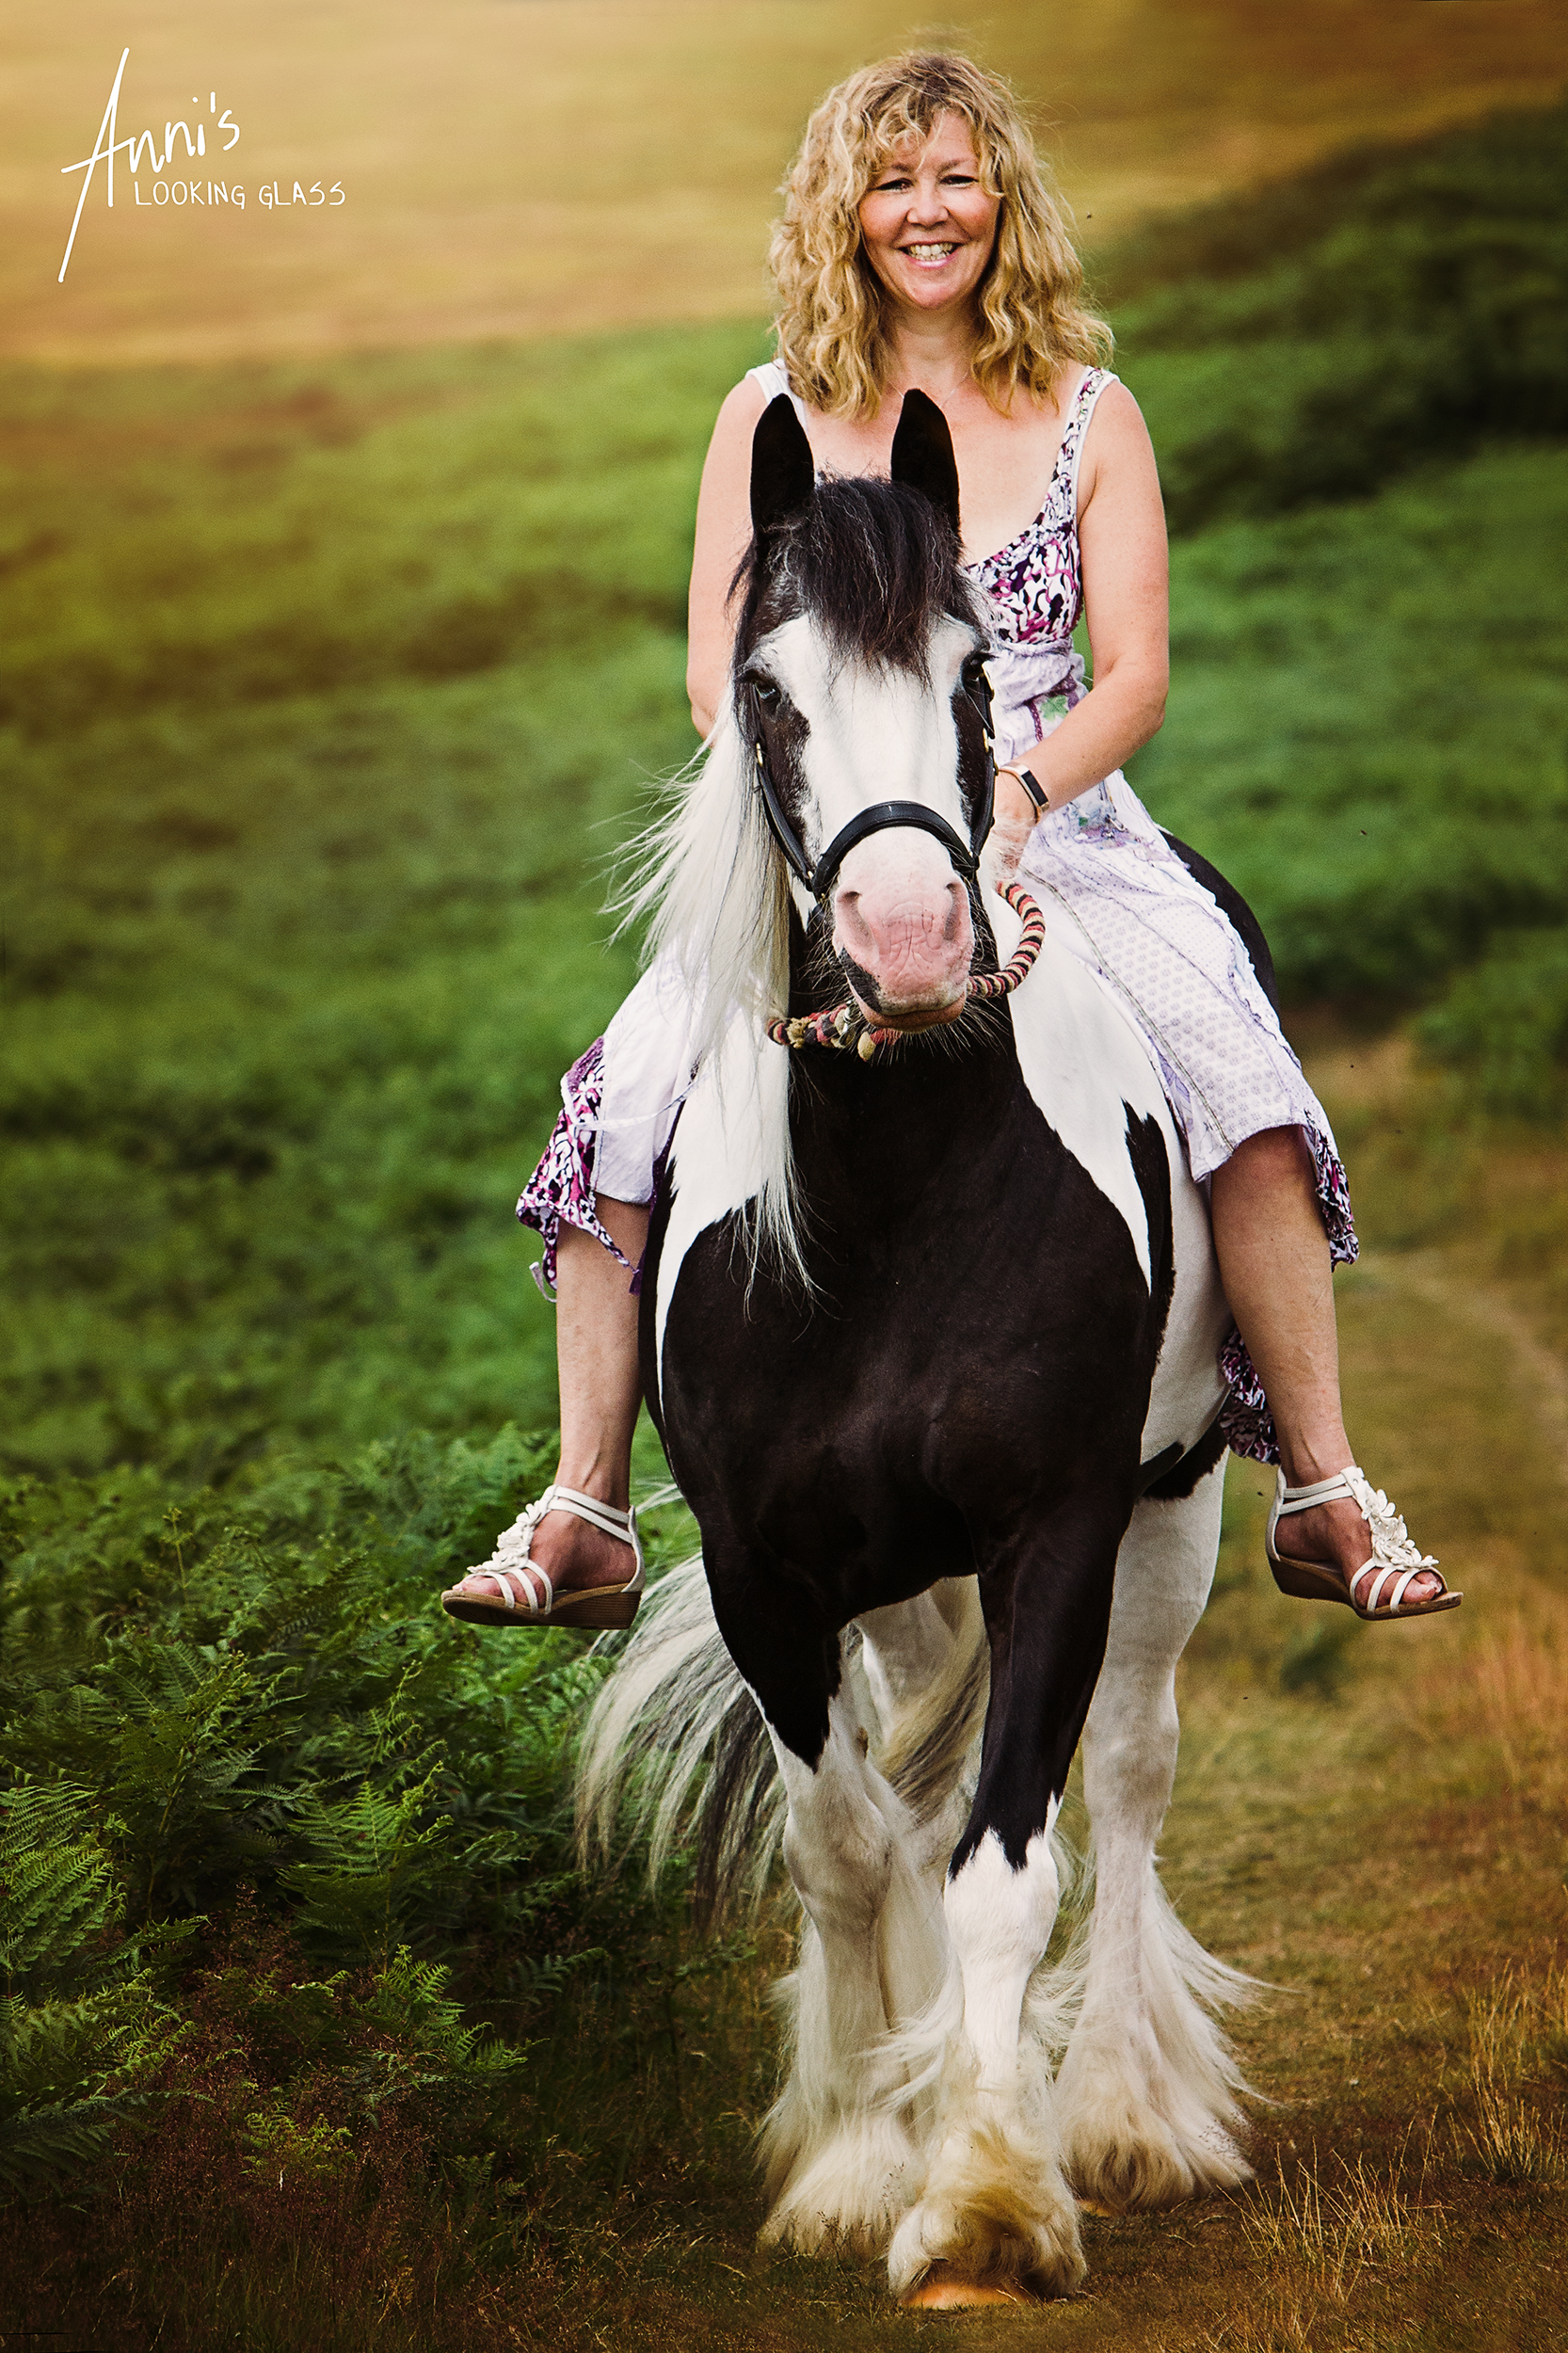 Bradgate Park, Newton Linford, Leicestershire: A blonde woman riding her black and white gypsy cob bareback. 2nd July, 2017